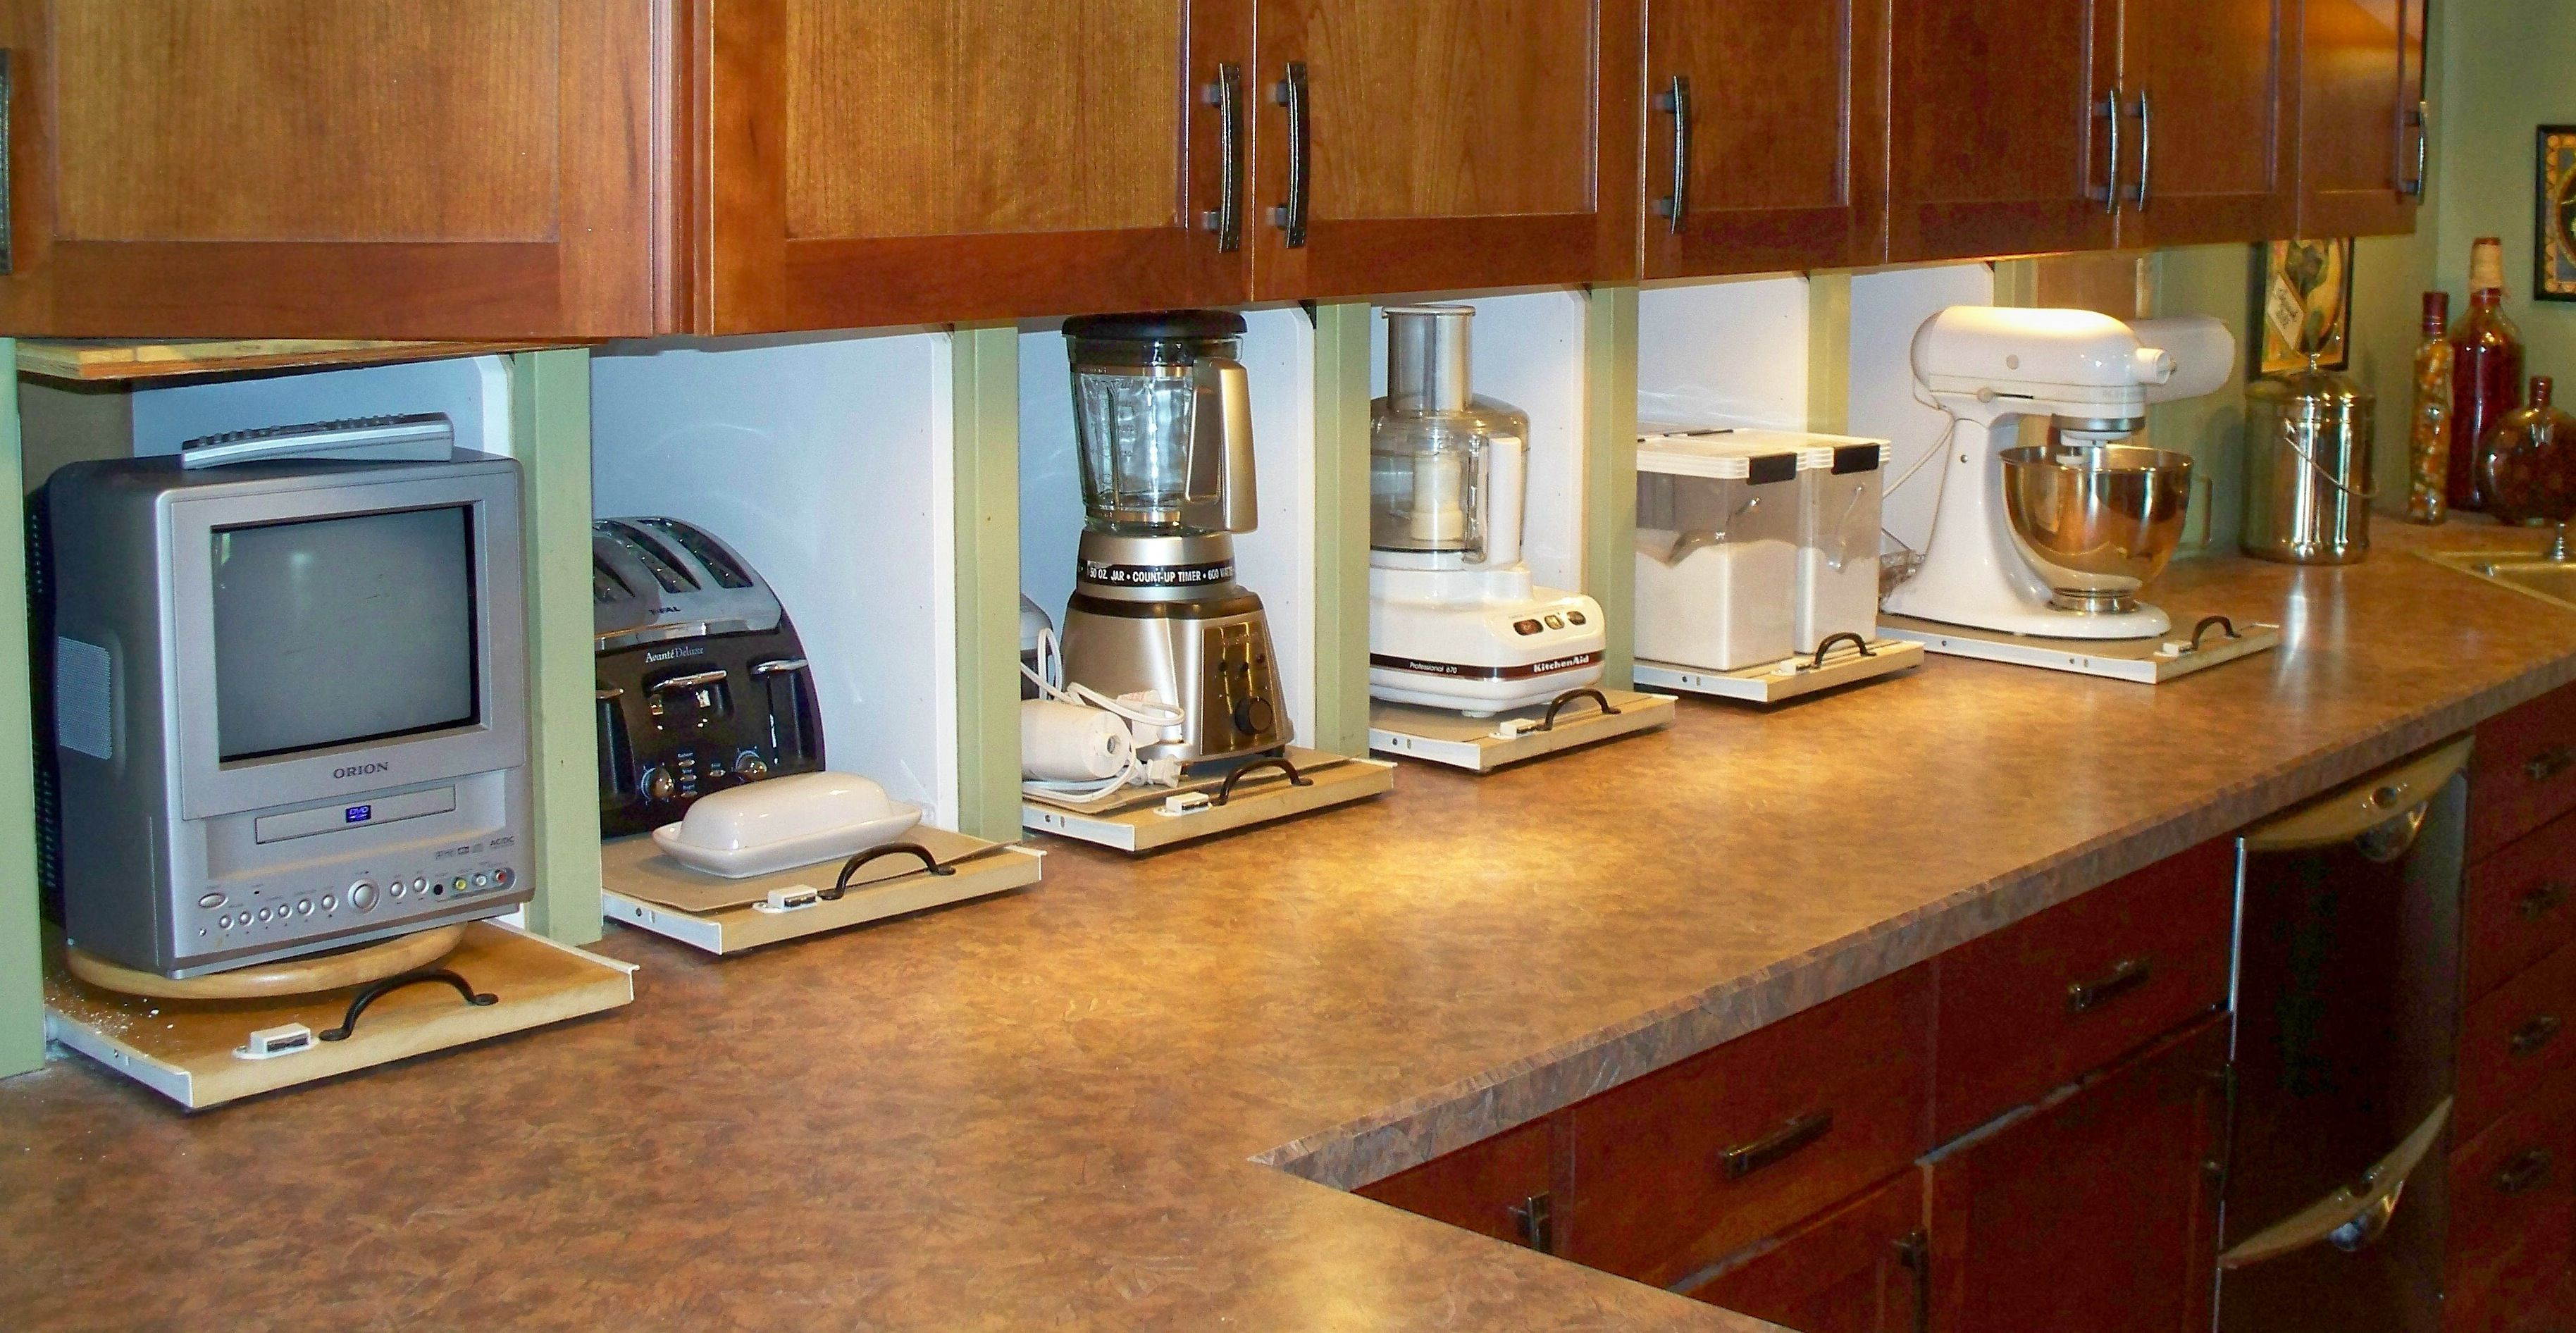 Tour the house kitchen appliance garage be cool and for Kitchen units in garage